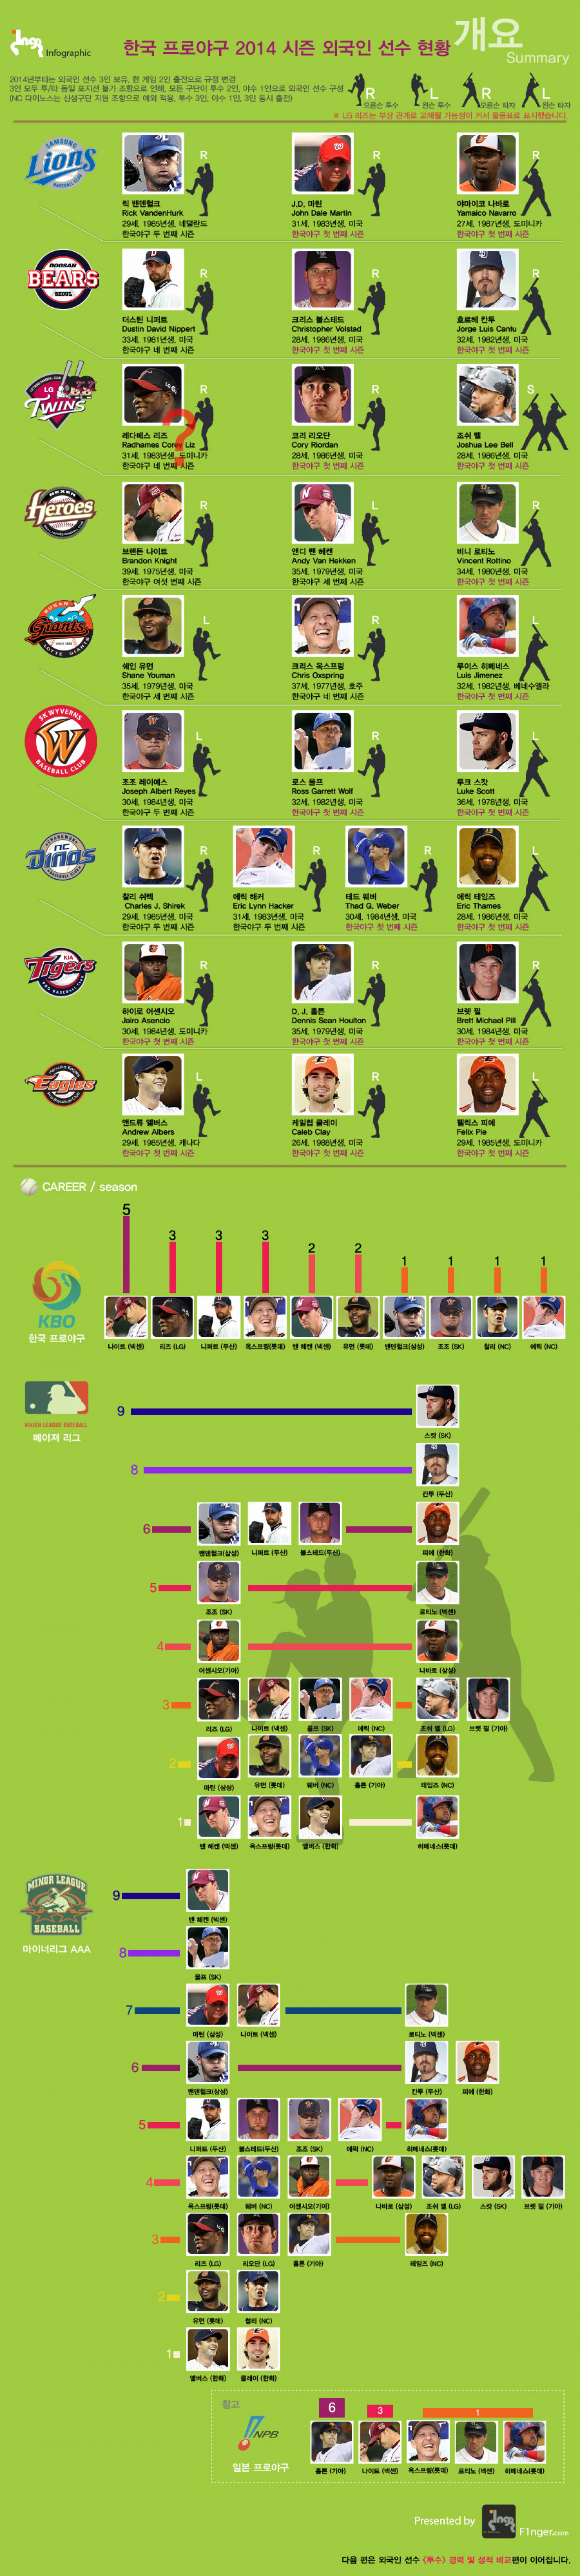 2014 KBO foreign player's information Infographic